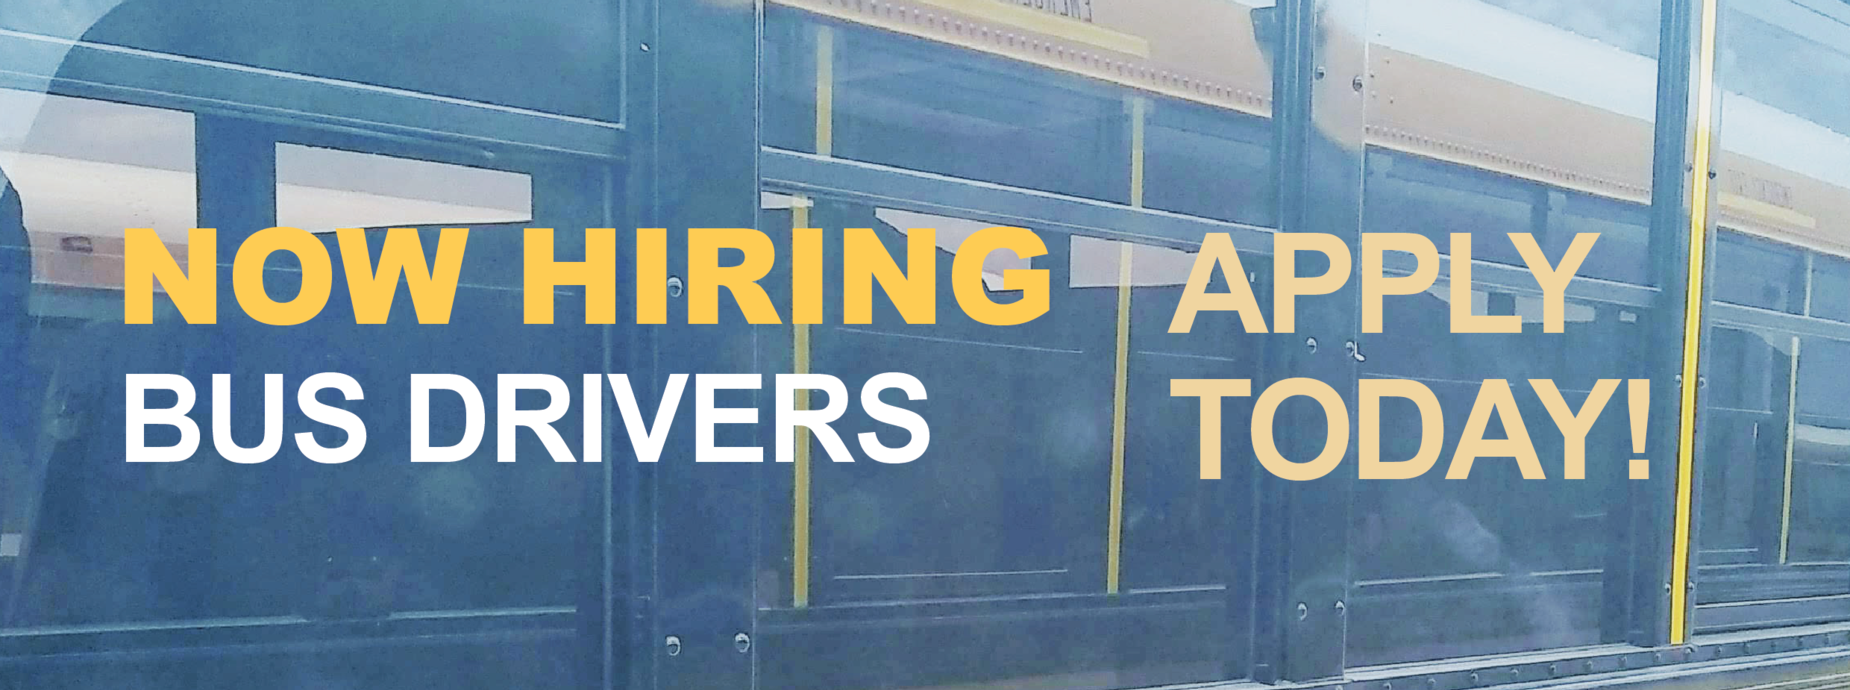 Now Hiring Bus Drivers! Apply Today!